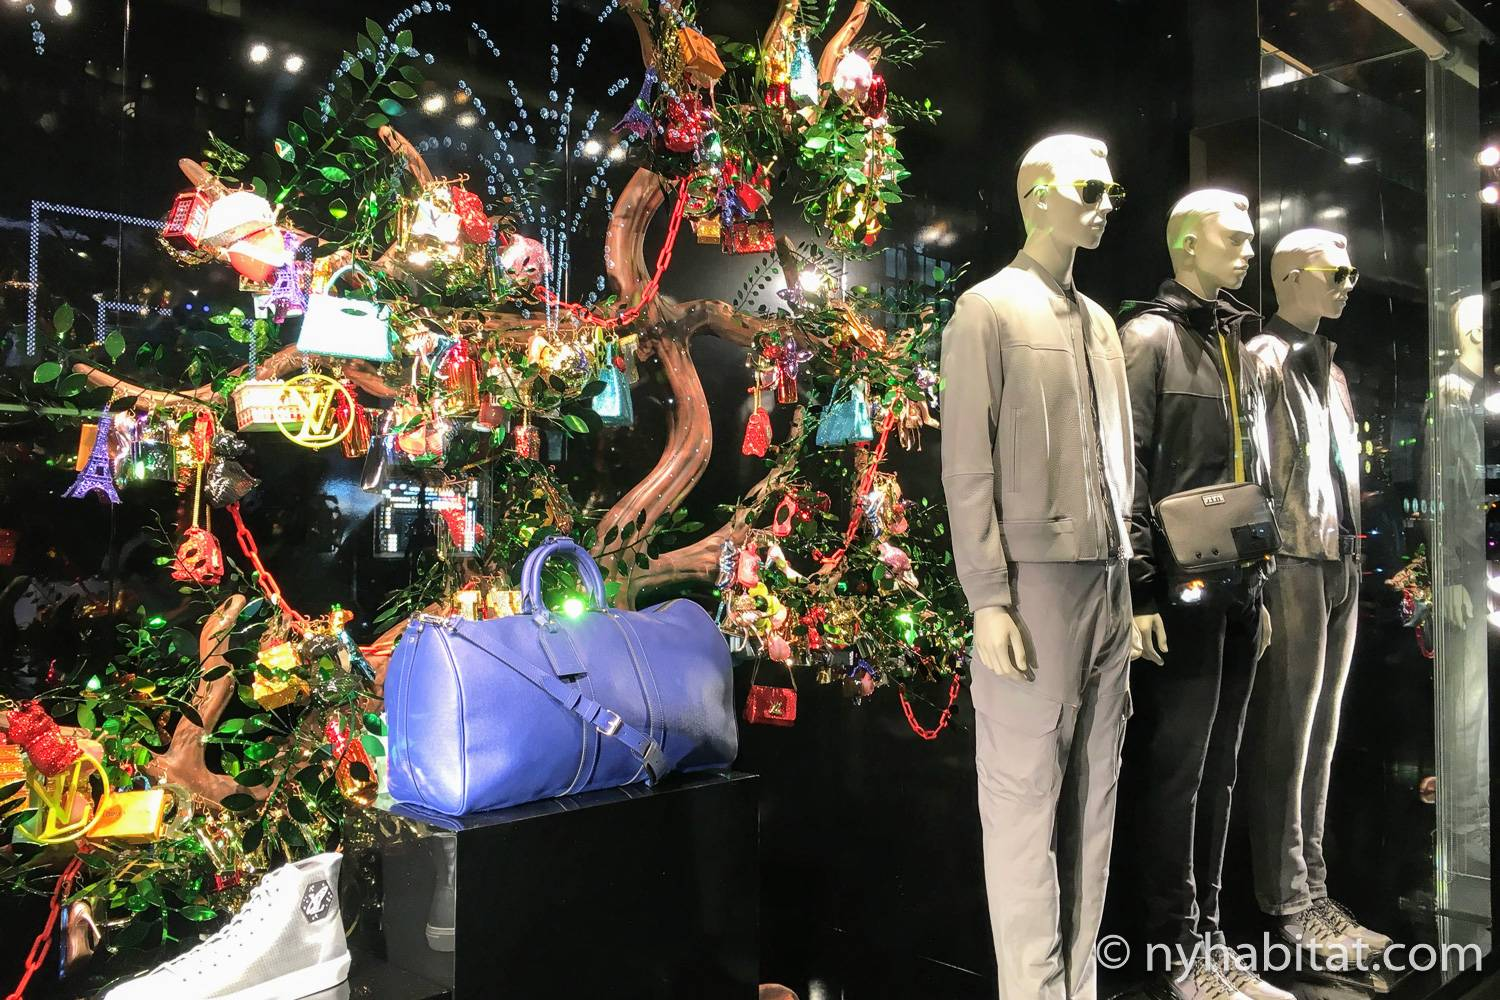 Image of Louis Vuitton's 2018 holiday window with decorated tree and mannequins.